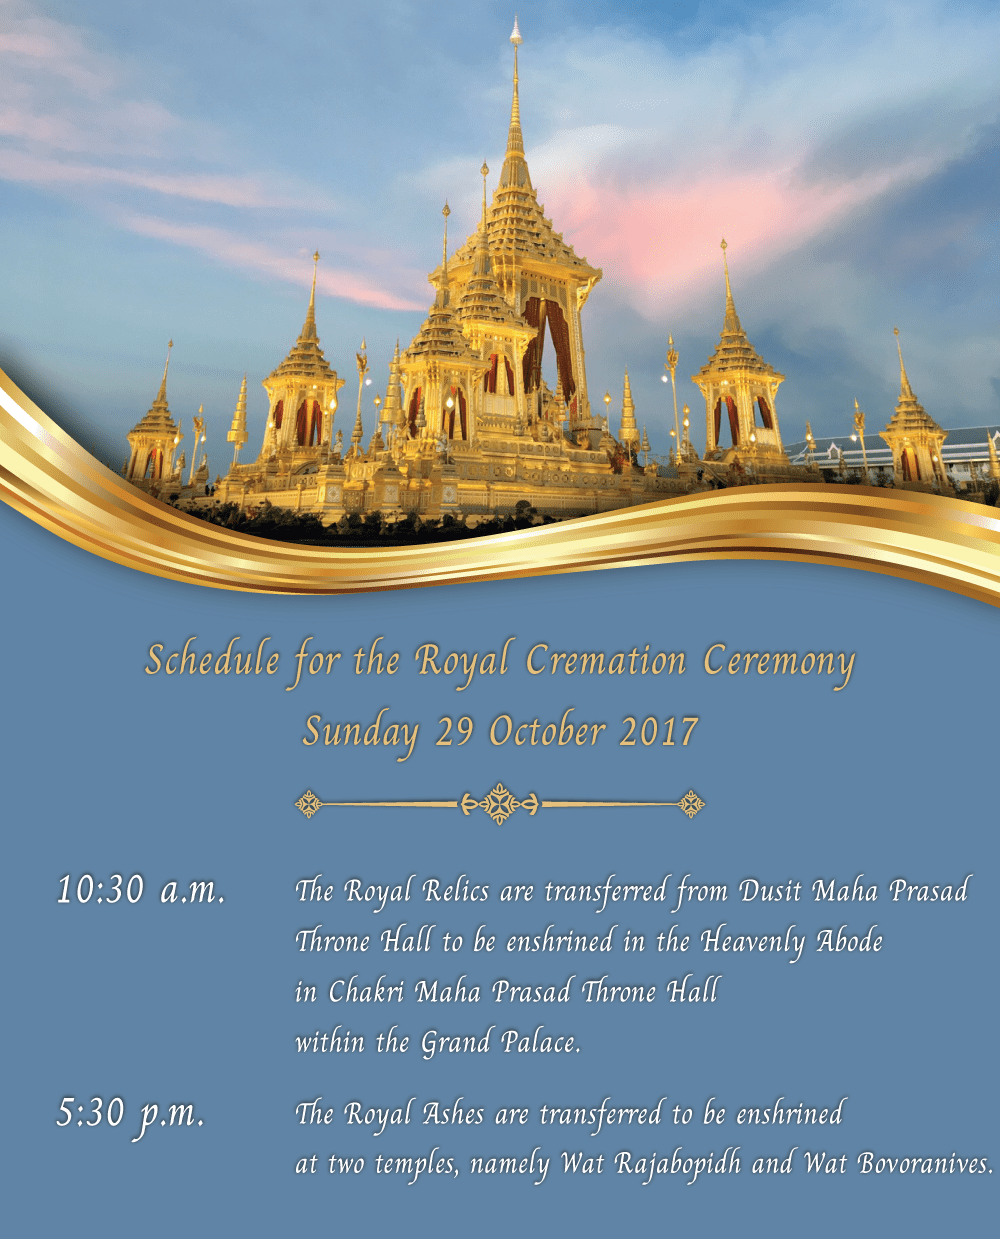 LIVE stream from Bangkok for today's ceremonies | The Thaiger